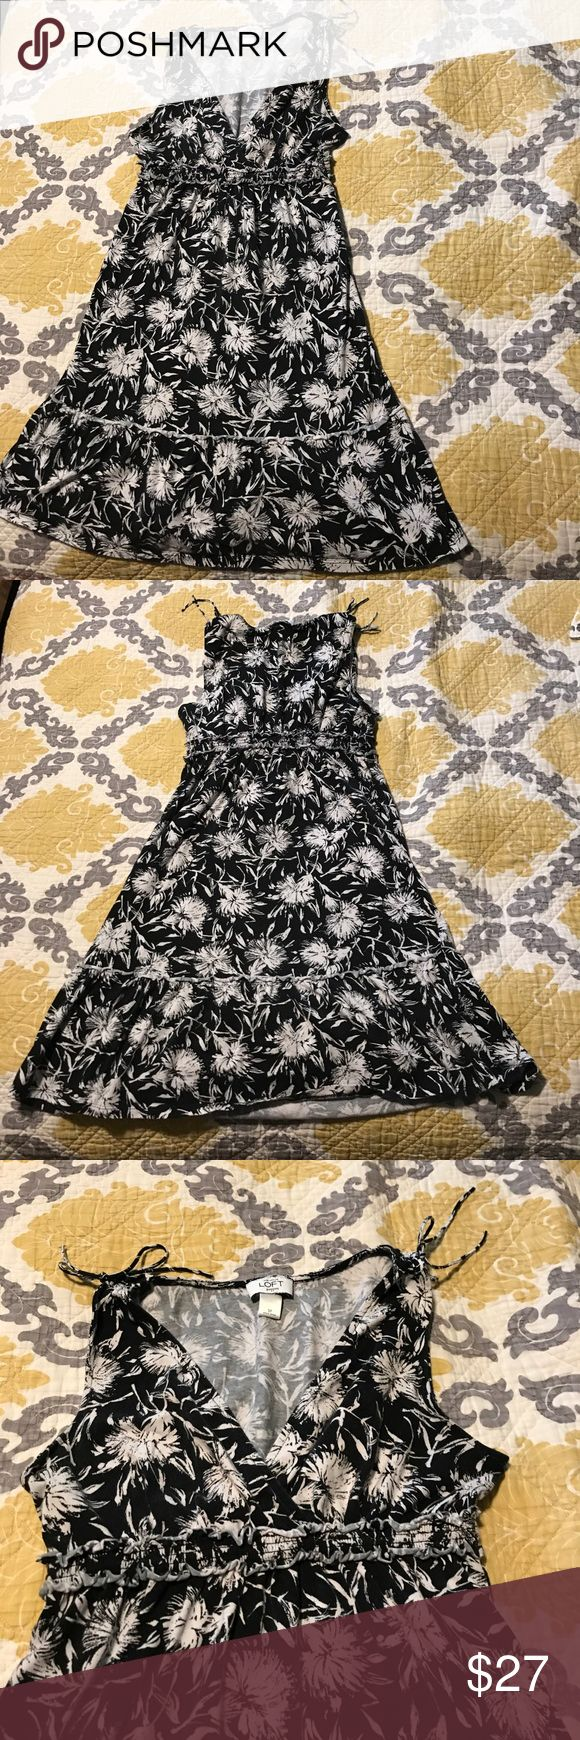 Ann Taylor Loft Dress Loft Dress. Black with white flowers all over. Size small petites. Flowy dress with an x neckline and ties at the shoulders with a cinched look. Worn a couple times. Dress is in good condition and is super cute for summer. Knee length LOFT Dresses High Low